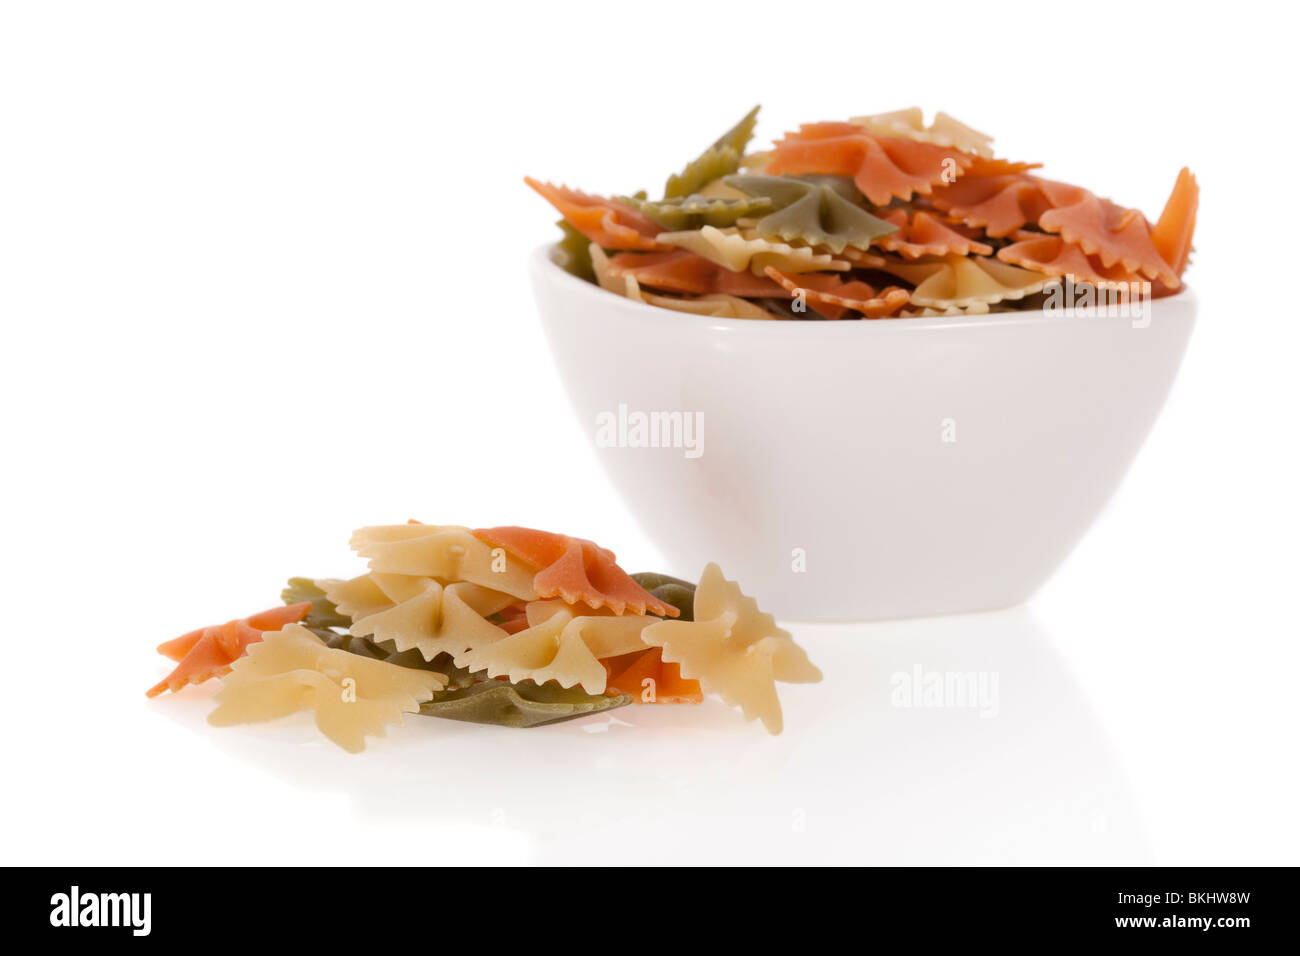 Tricolore farfalle pasta in a bowl isolated on a white background - Stock Image